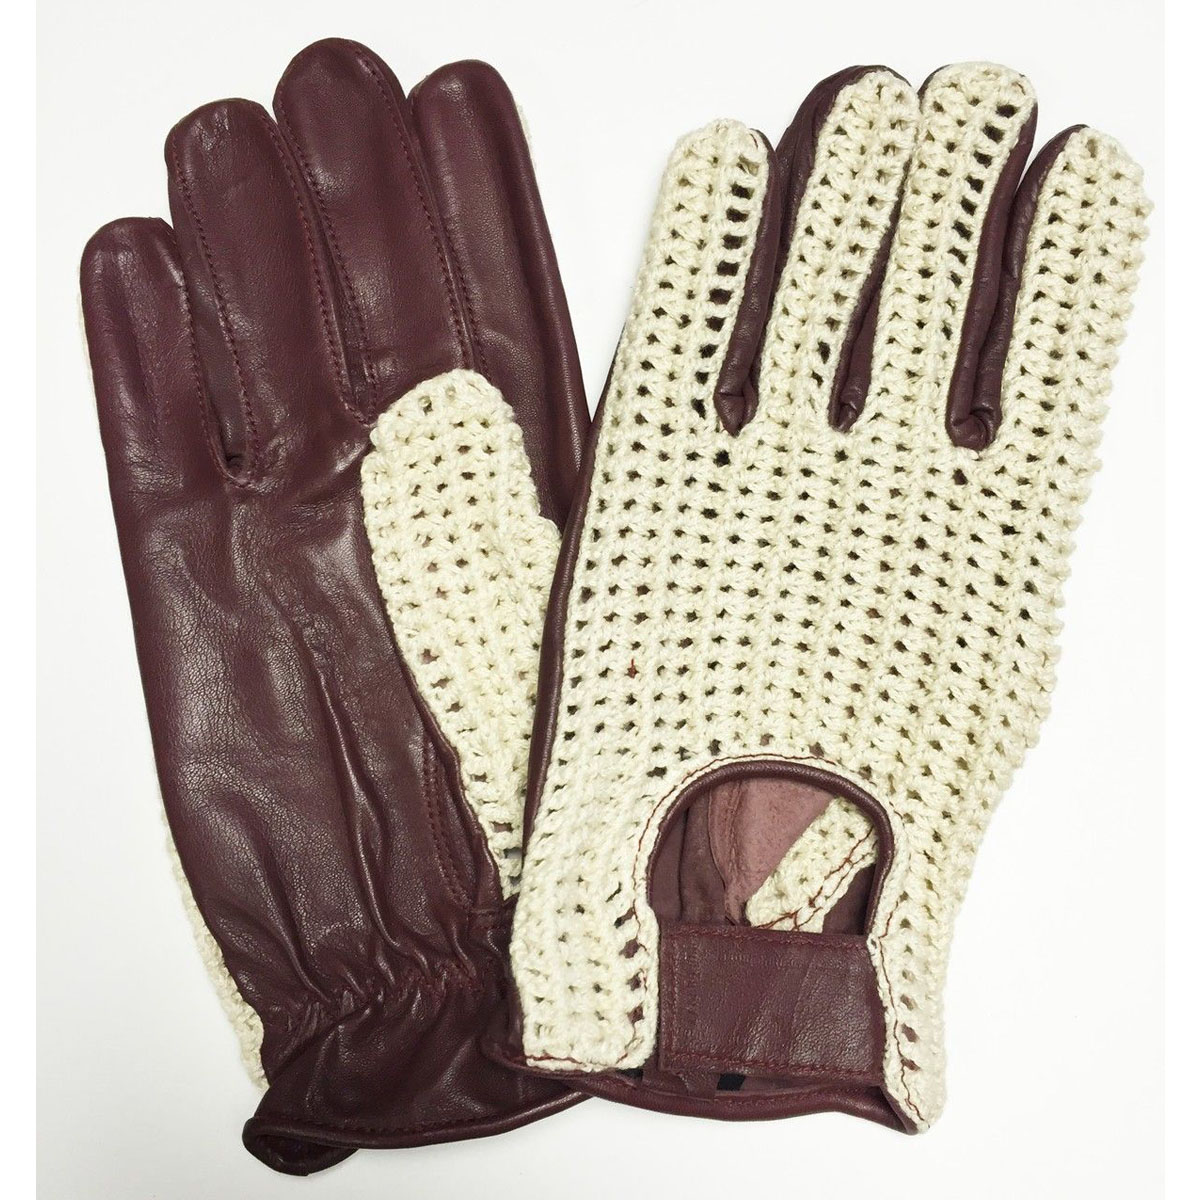 Dam Leather Weight Lifting Gym Gloves Real Leather Women S: LEATHER DRIVING SLIM FIT GLOVES CHAUFFEUR BIKER BUS